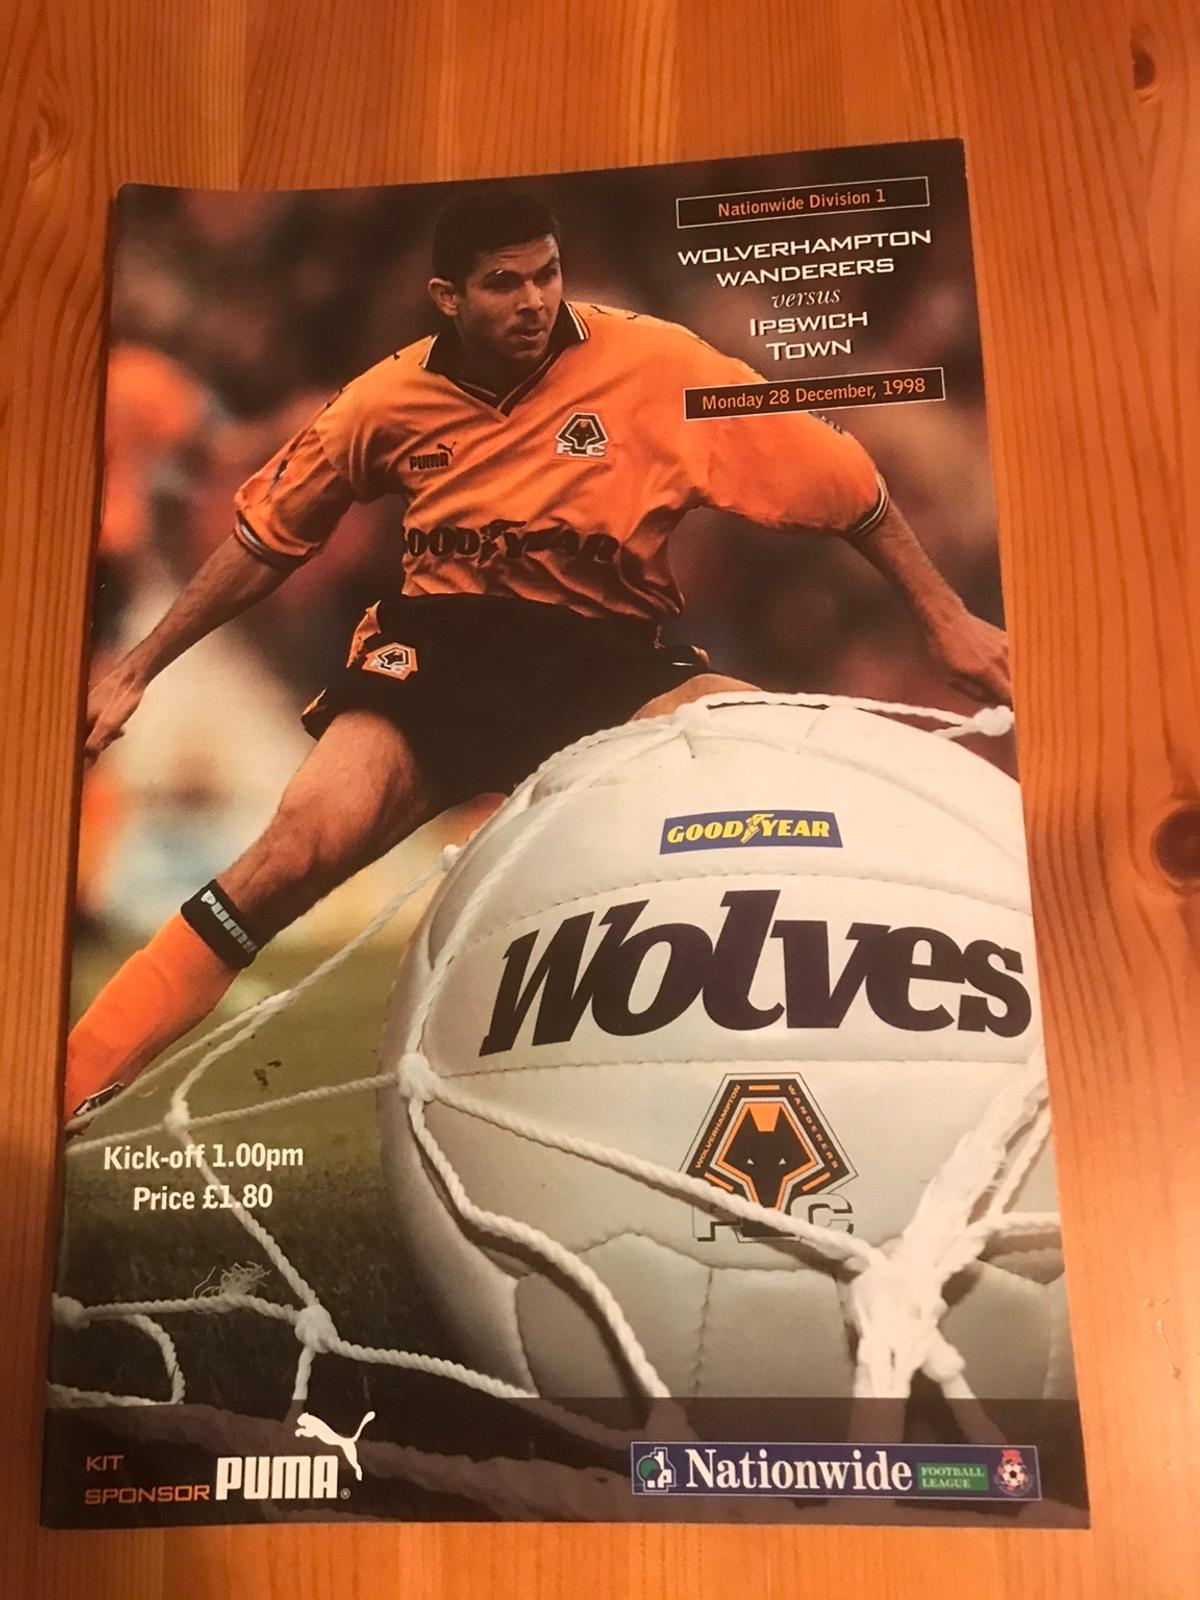 Excellent condition programme for Nationwide Division One match played on 28 Dec 1998 £1 postage or collect